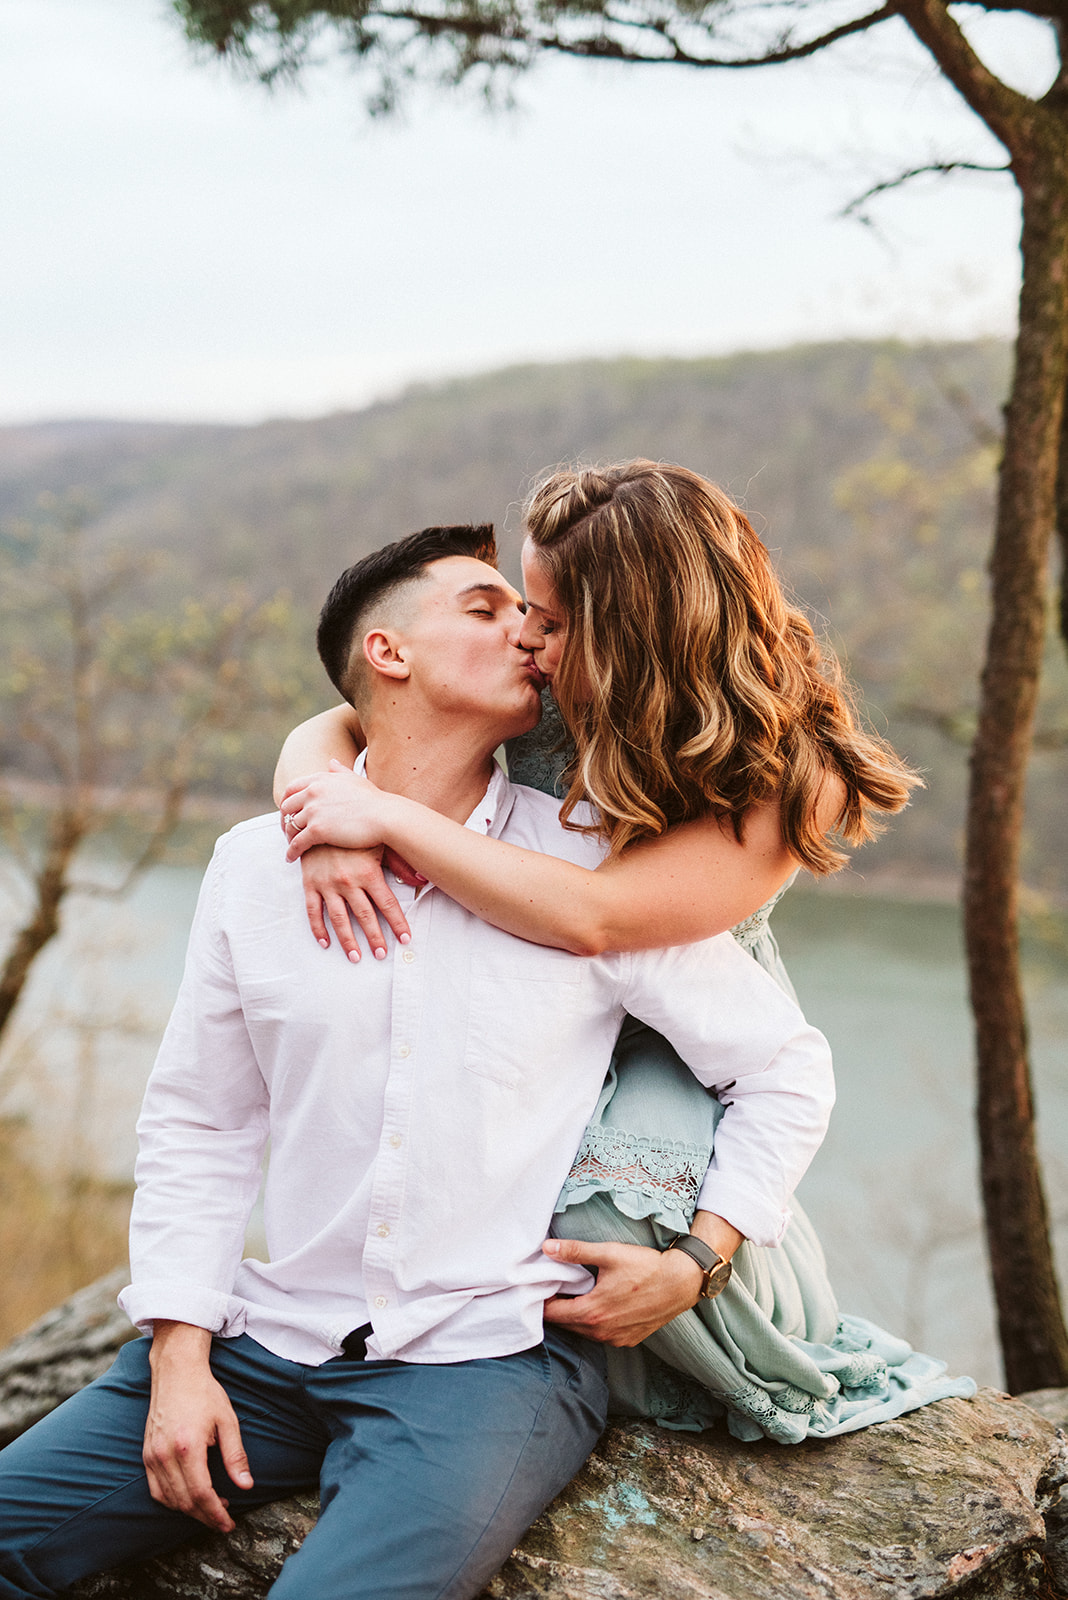 An engagement session at Pinnacle Overlook in Holtwood, Pennsylvania. Photographed by Alyssa Christine Photography, based in lancaster Pennsylvania.